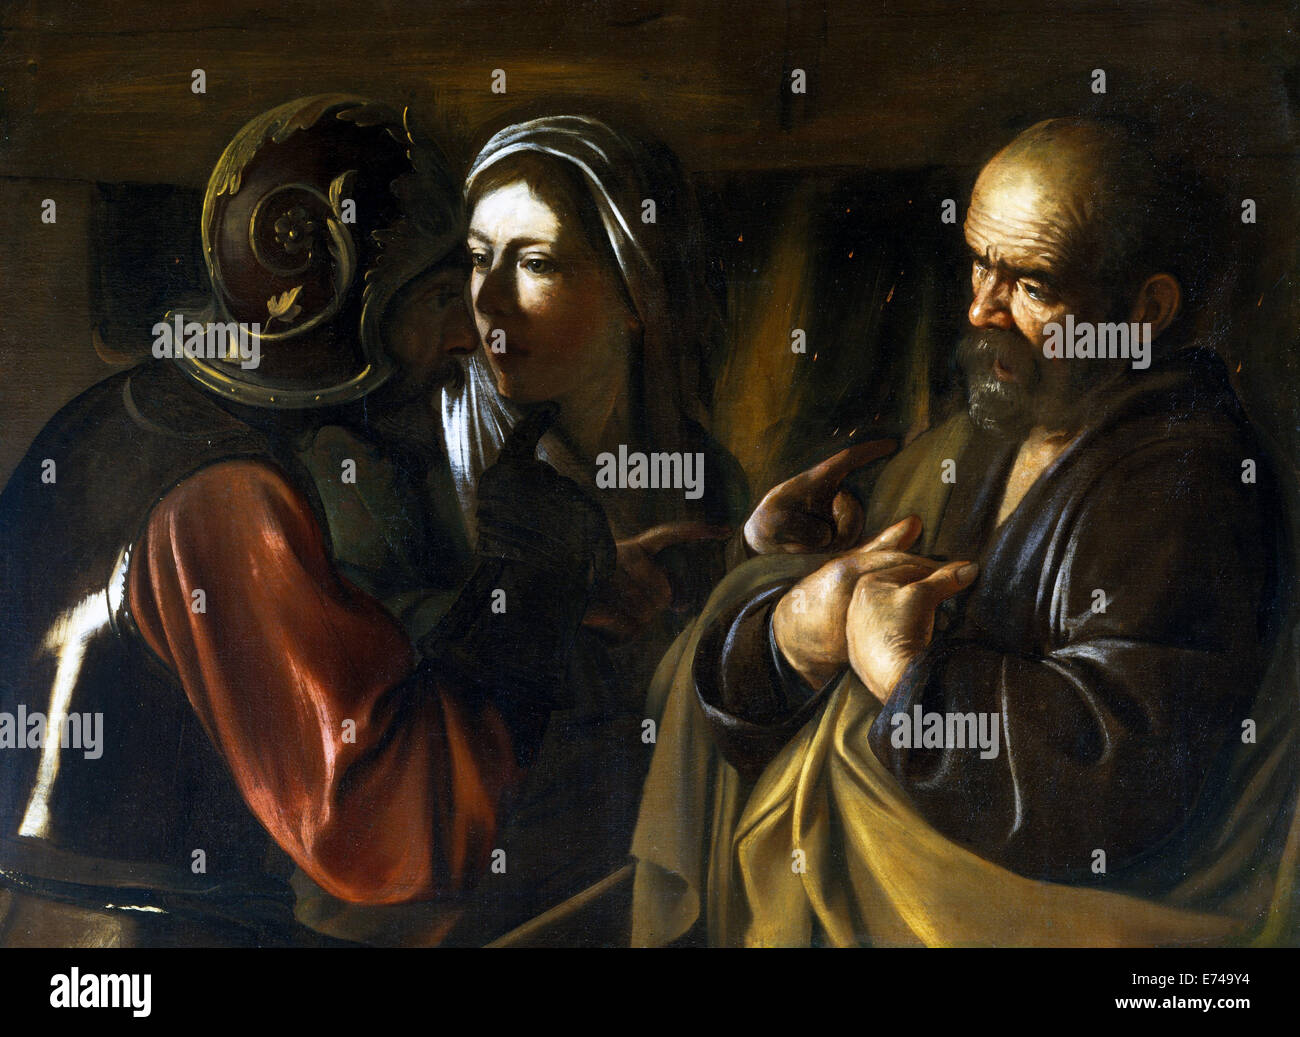 The Denial of St Peter - by Caravaggio - Stock Image